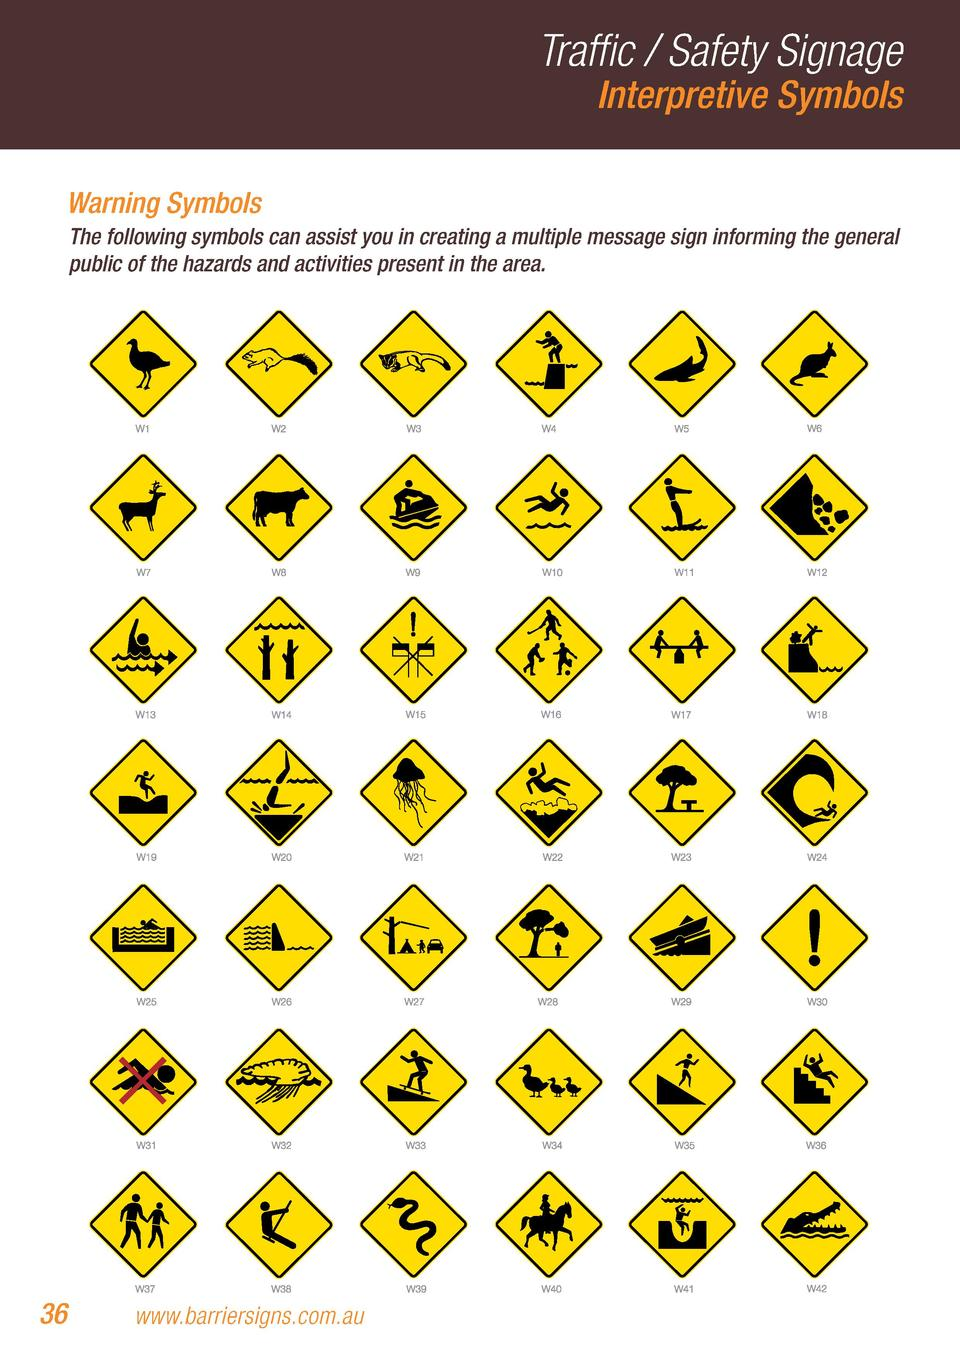 Traffic   Safety Signage Interpretive Symbols  Warning Symbols The following symbols can assist you in creating a multiple...